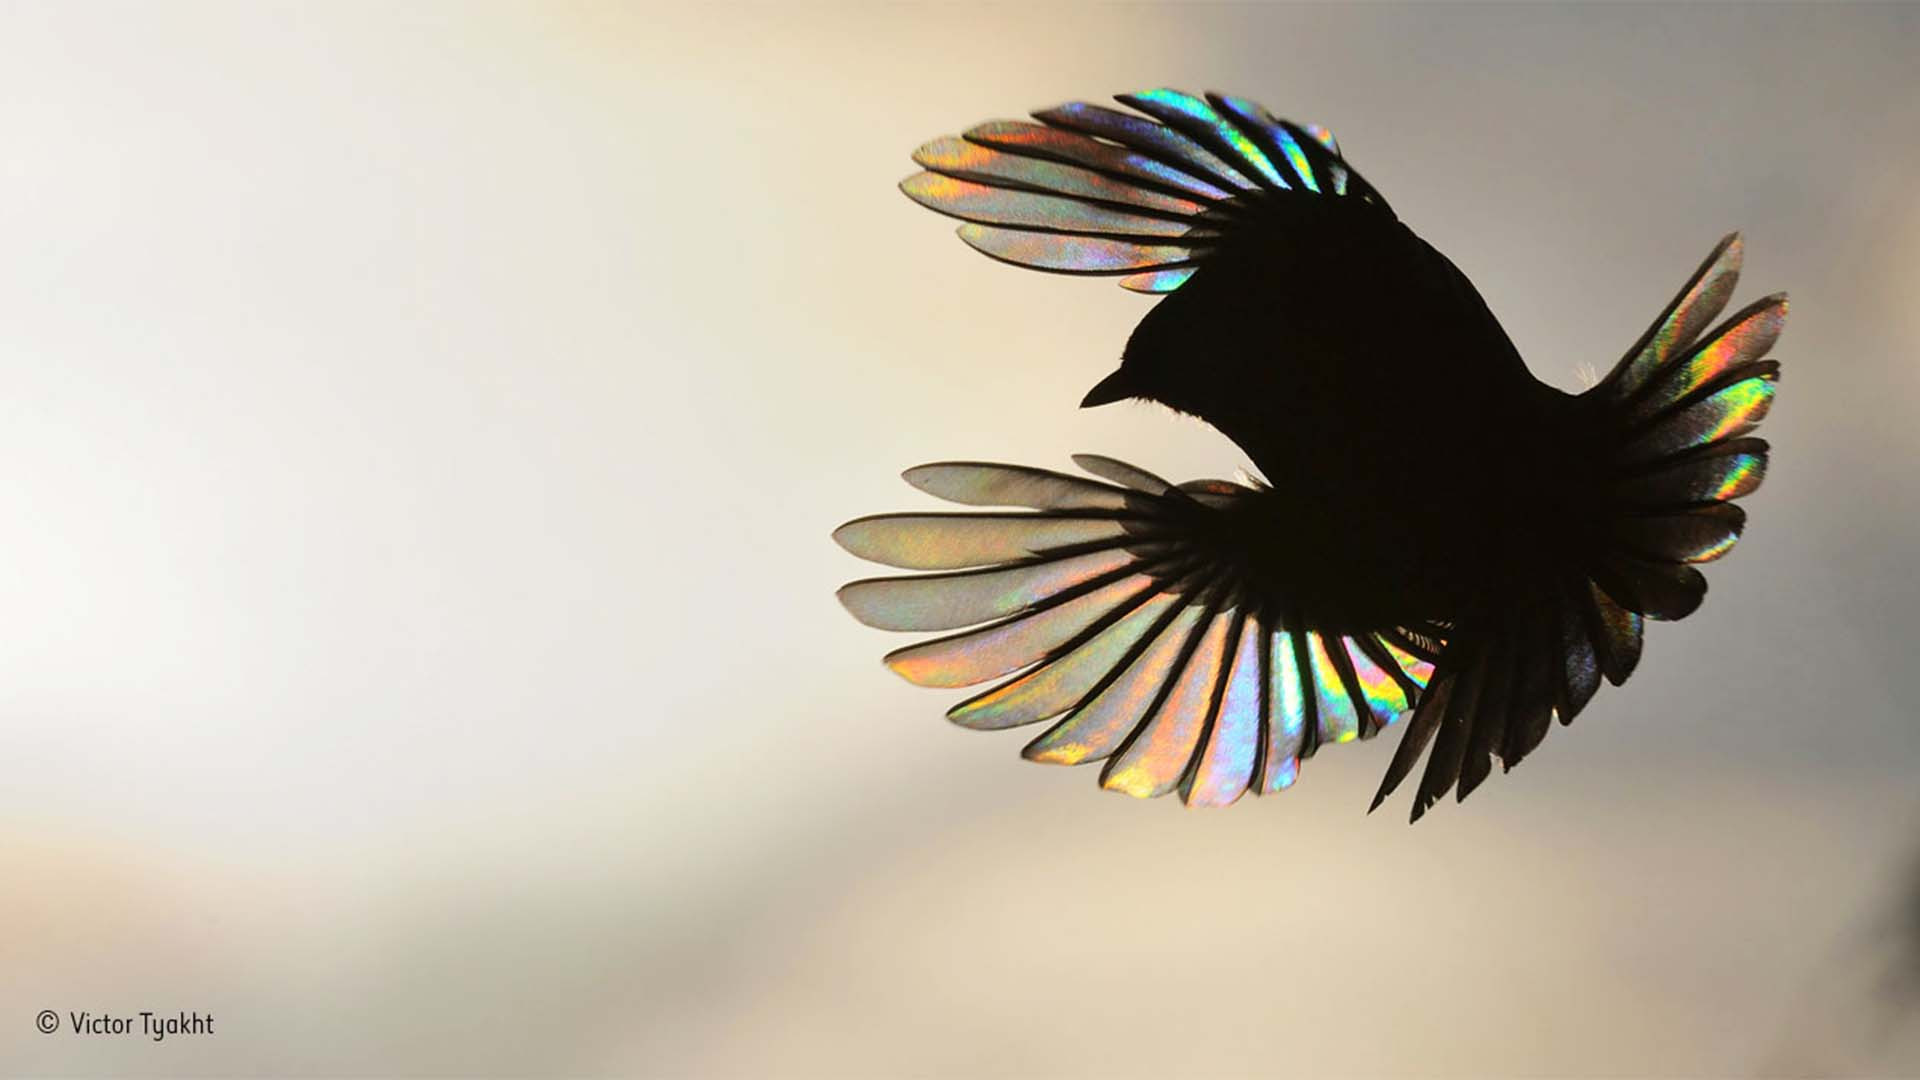 Light glowing through a bird's wings as the body forms a silhouette